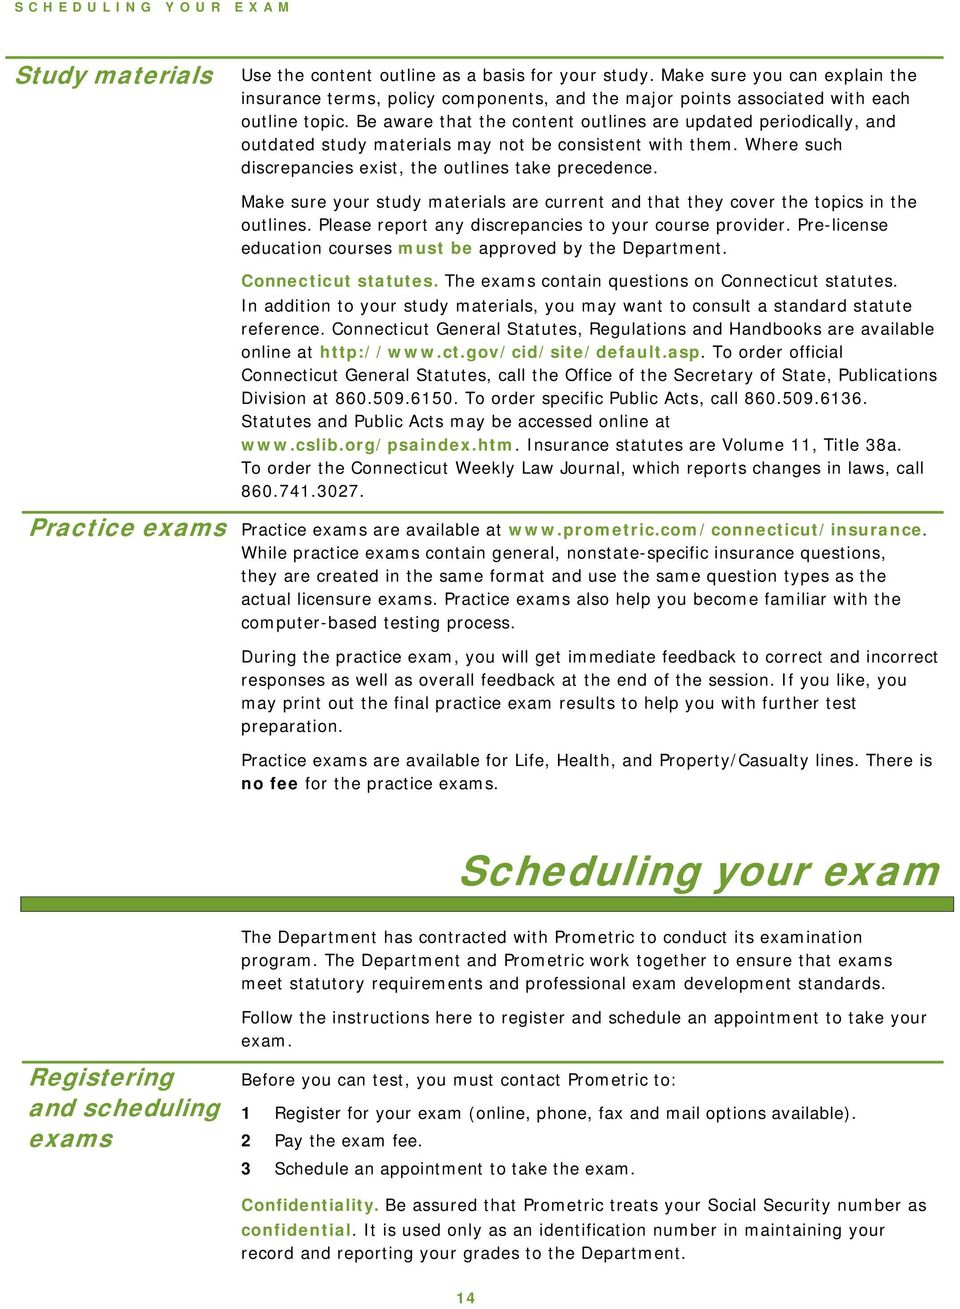 Practice exams Make sure your study materials are current and that they  cover the topics in